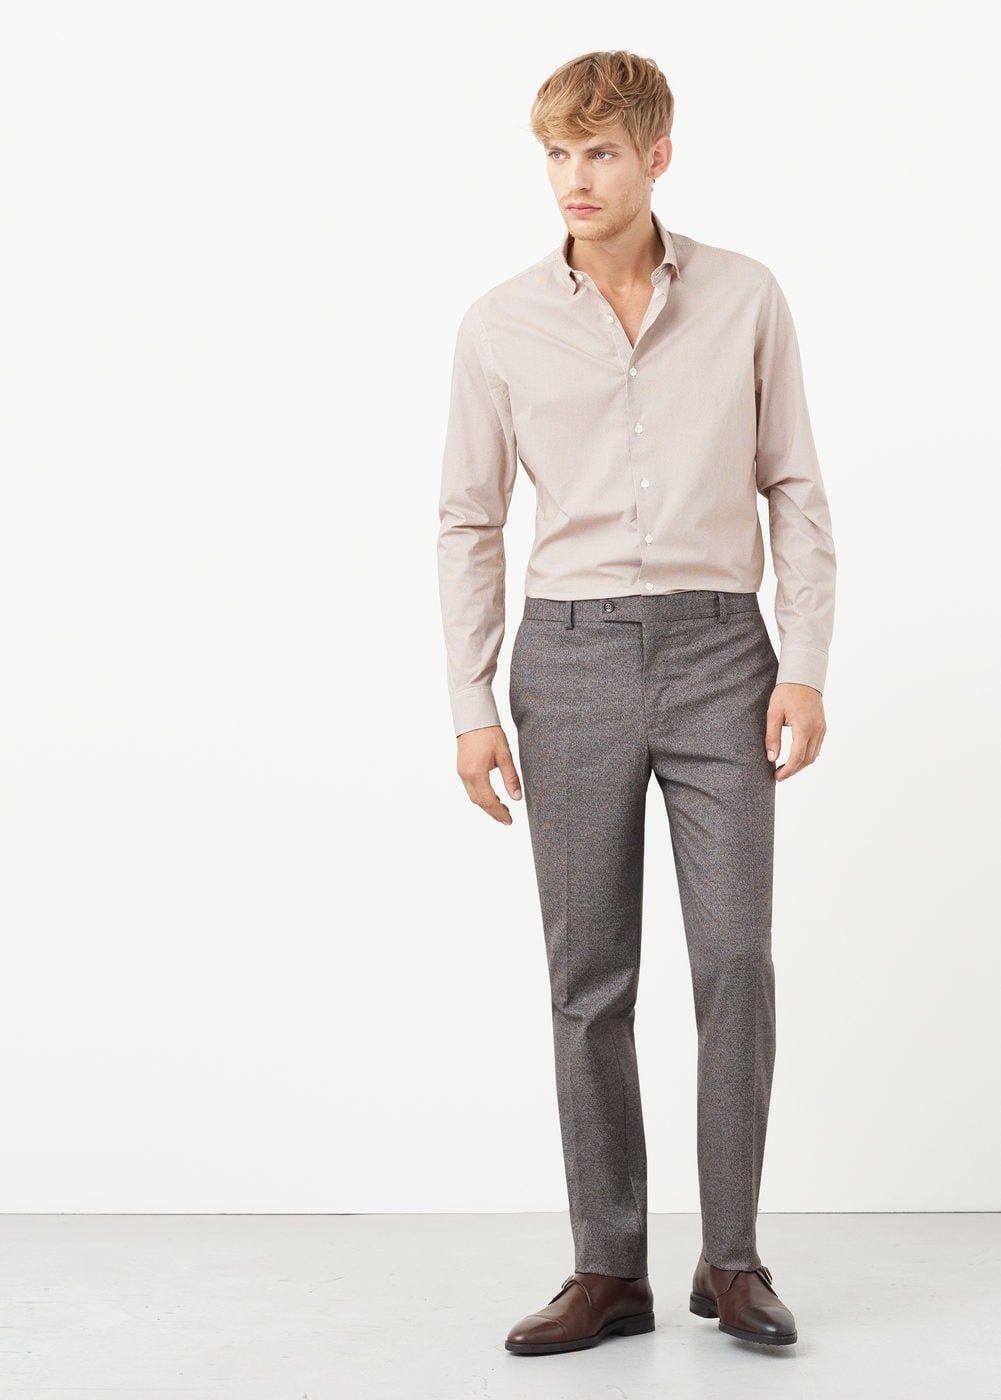 036cb1c8 Slim-fit patterned suit trousers - Men | Grey flannel trousers in ...